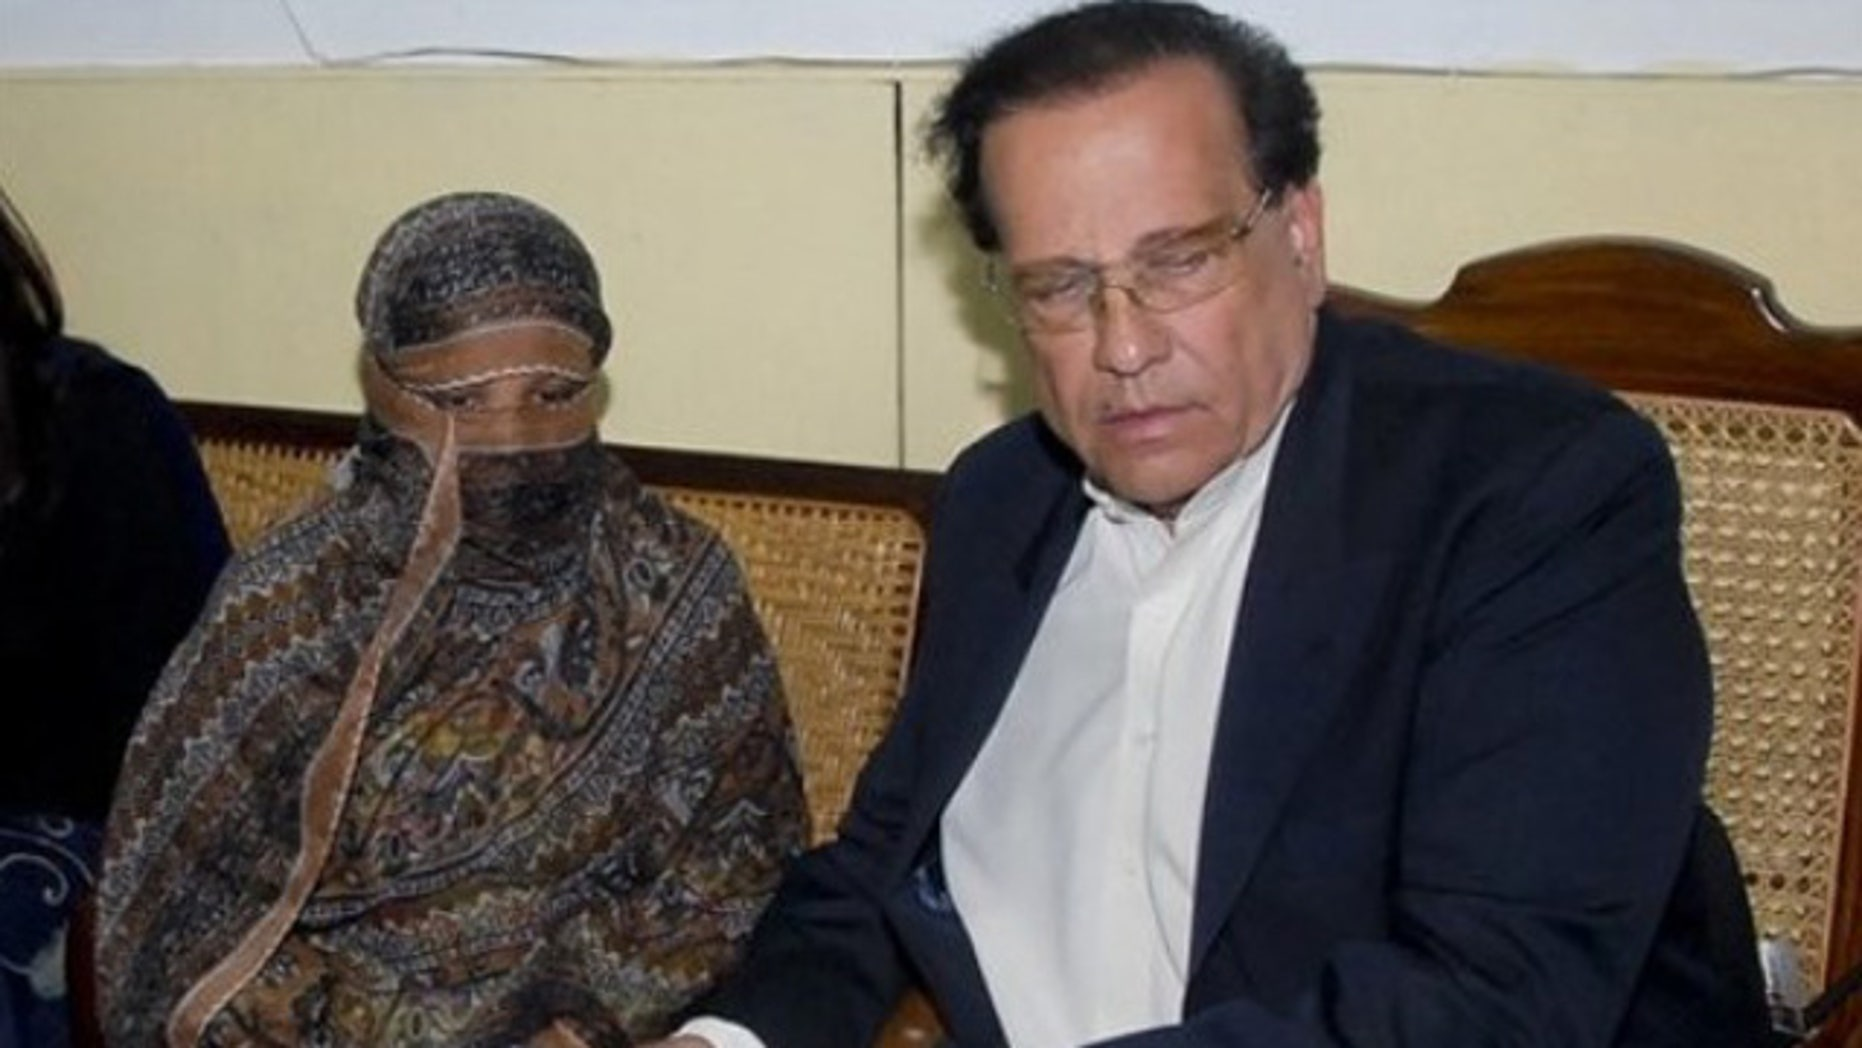 Nov. 20: Salman Taseer, right, Governor of Pakistani Punjab Province, listens to Pakistani Christian woman Asia Bibi, left, at a prison in Sheikhupura near Lahore, Pakistan.